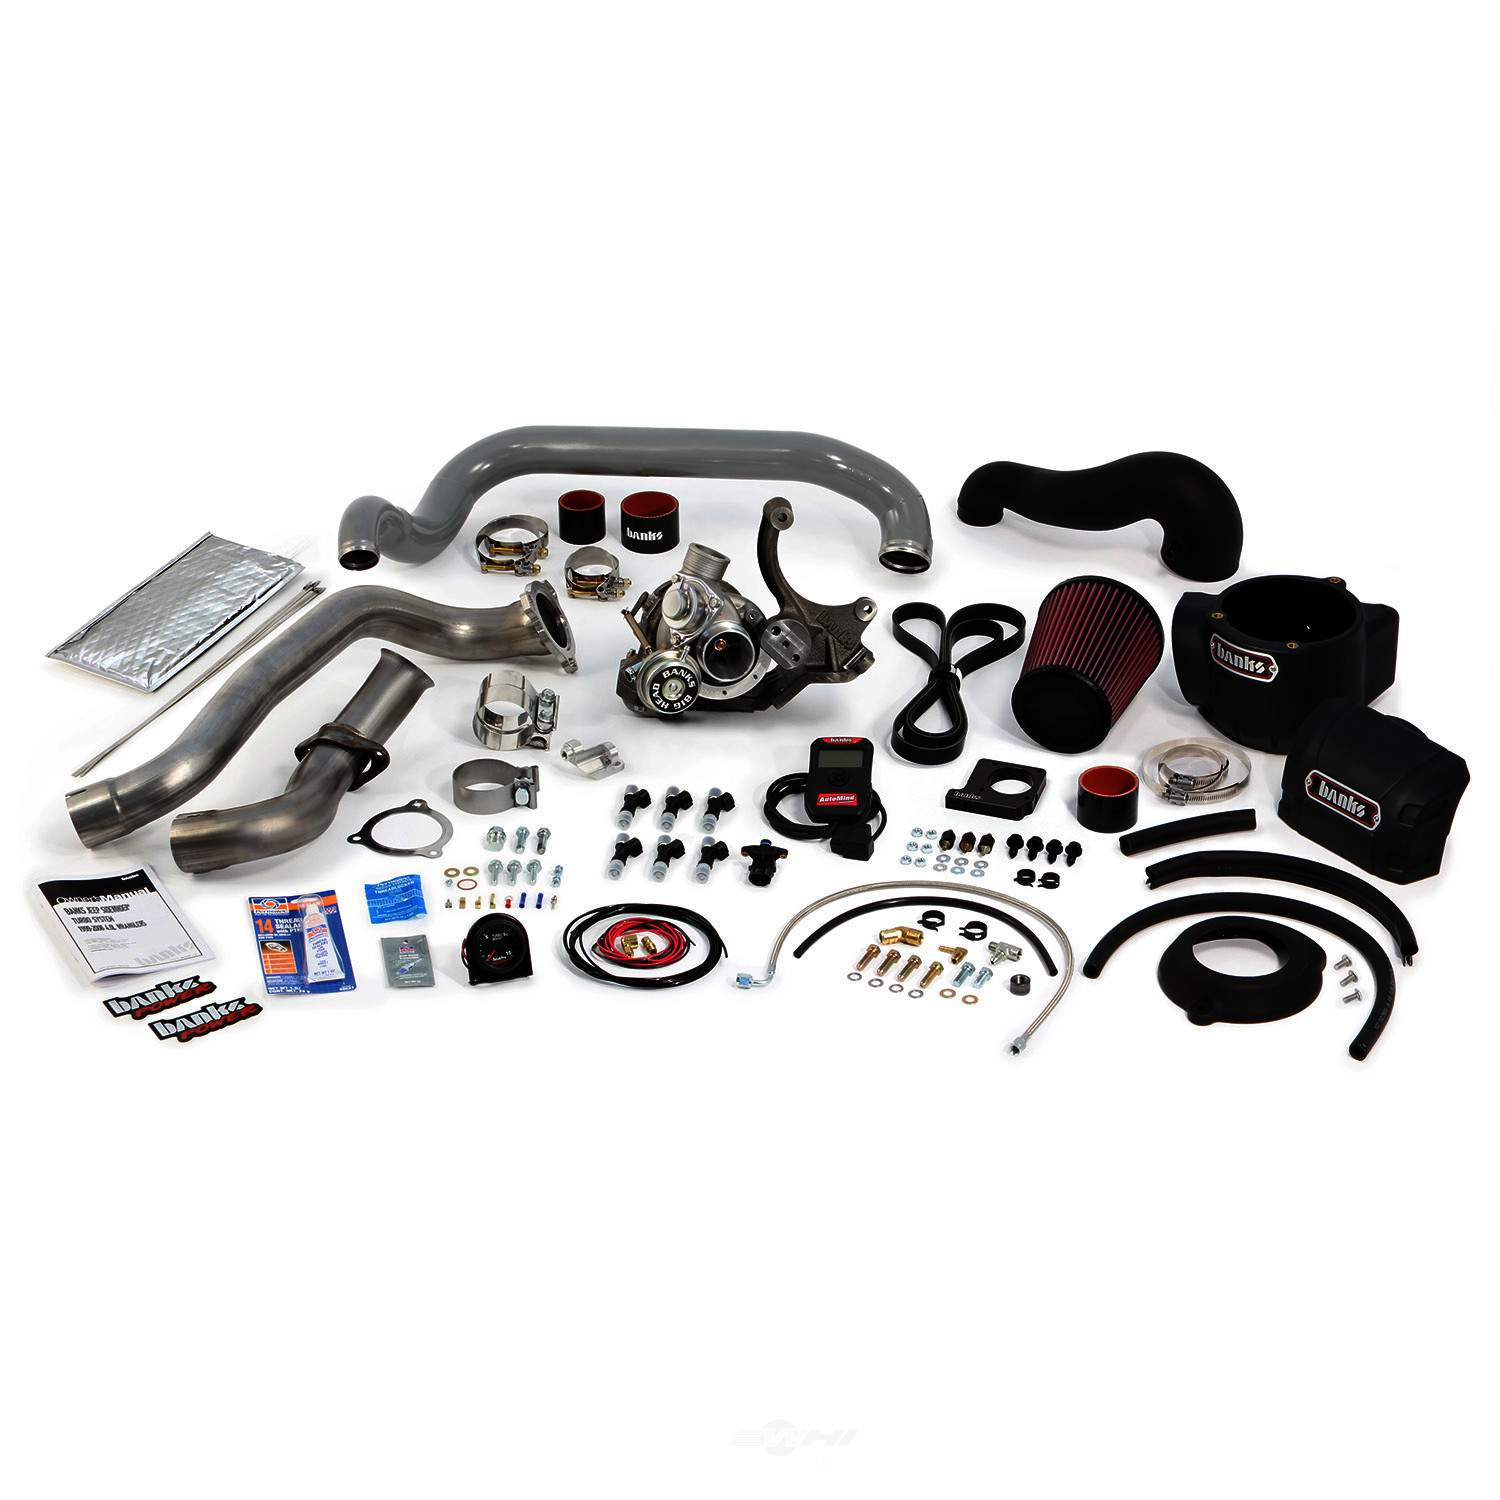 BANKS POWER - Sidewinder Turbo System - Non-Intercooled - w/ AutoMind Handheld Program - B1T 24240